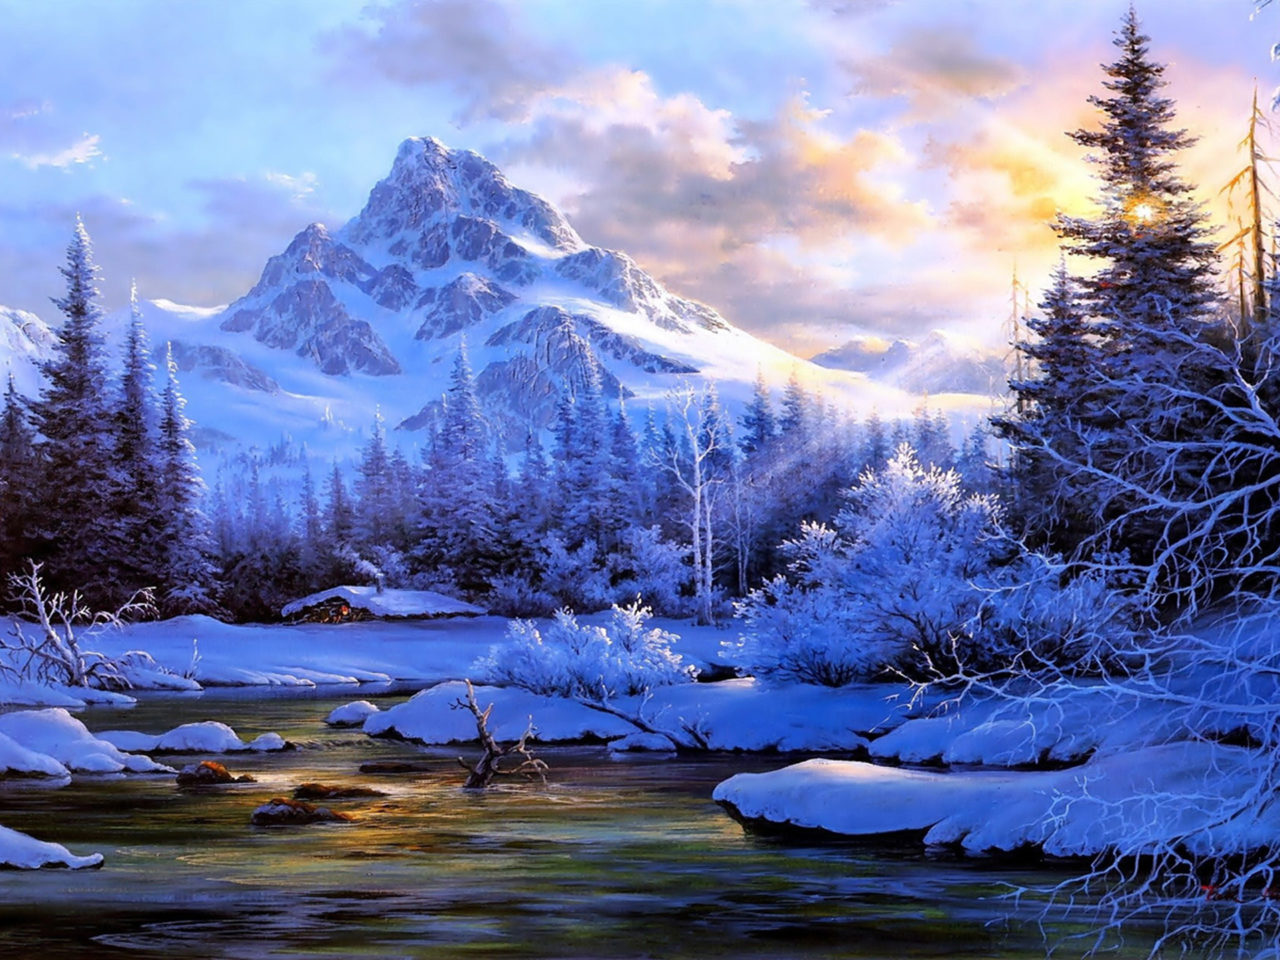 Summer Iphone 5 Wallpaper Winter Landscape Background Mountain River Trees Snow